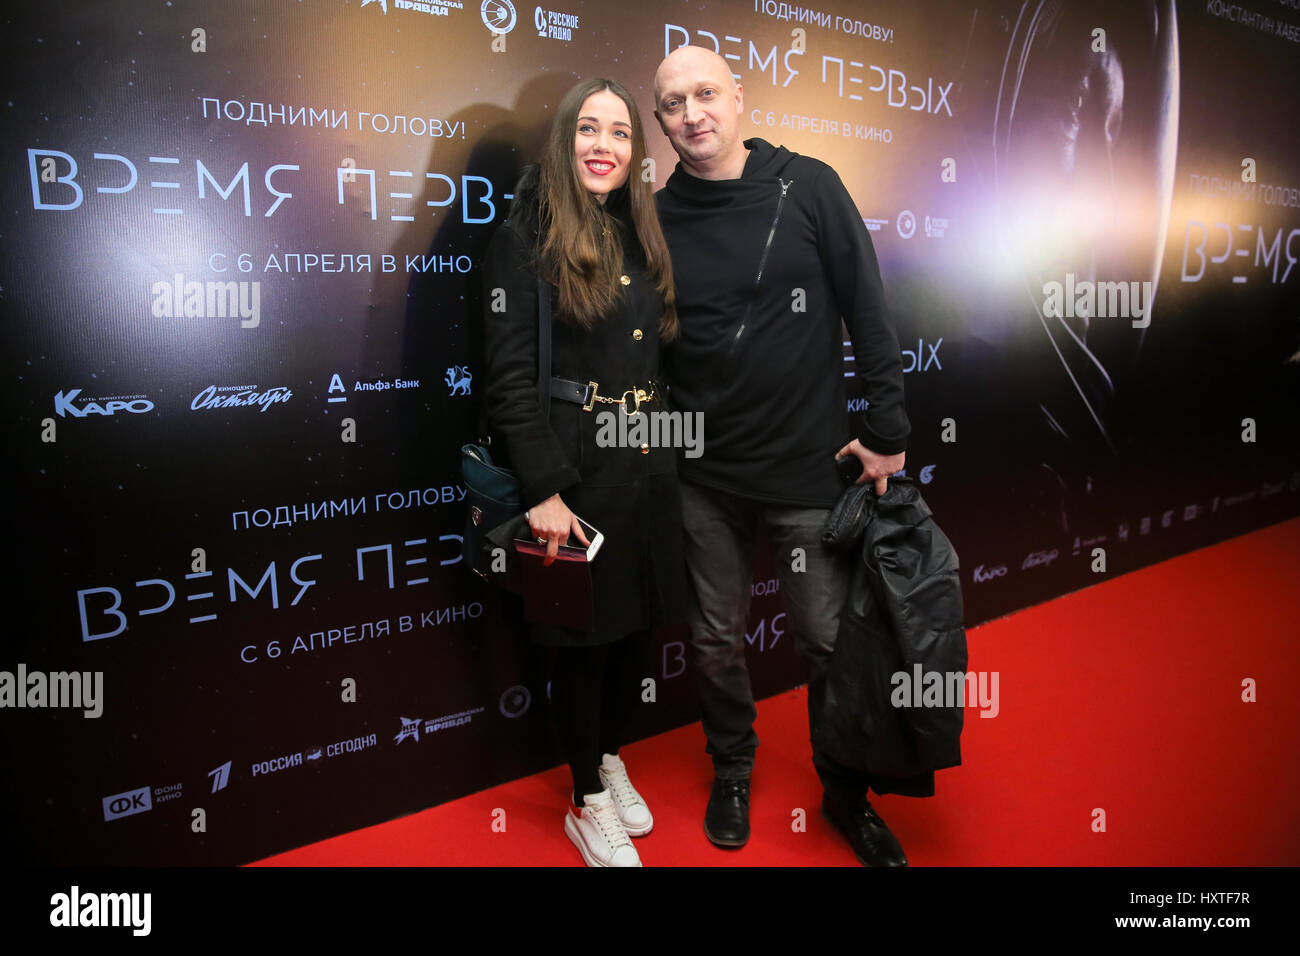 Gosha Kutsenko for the first time showed the public his two-year-old daughter, Eugene 07.04.2016 30